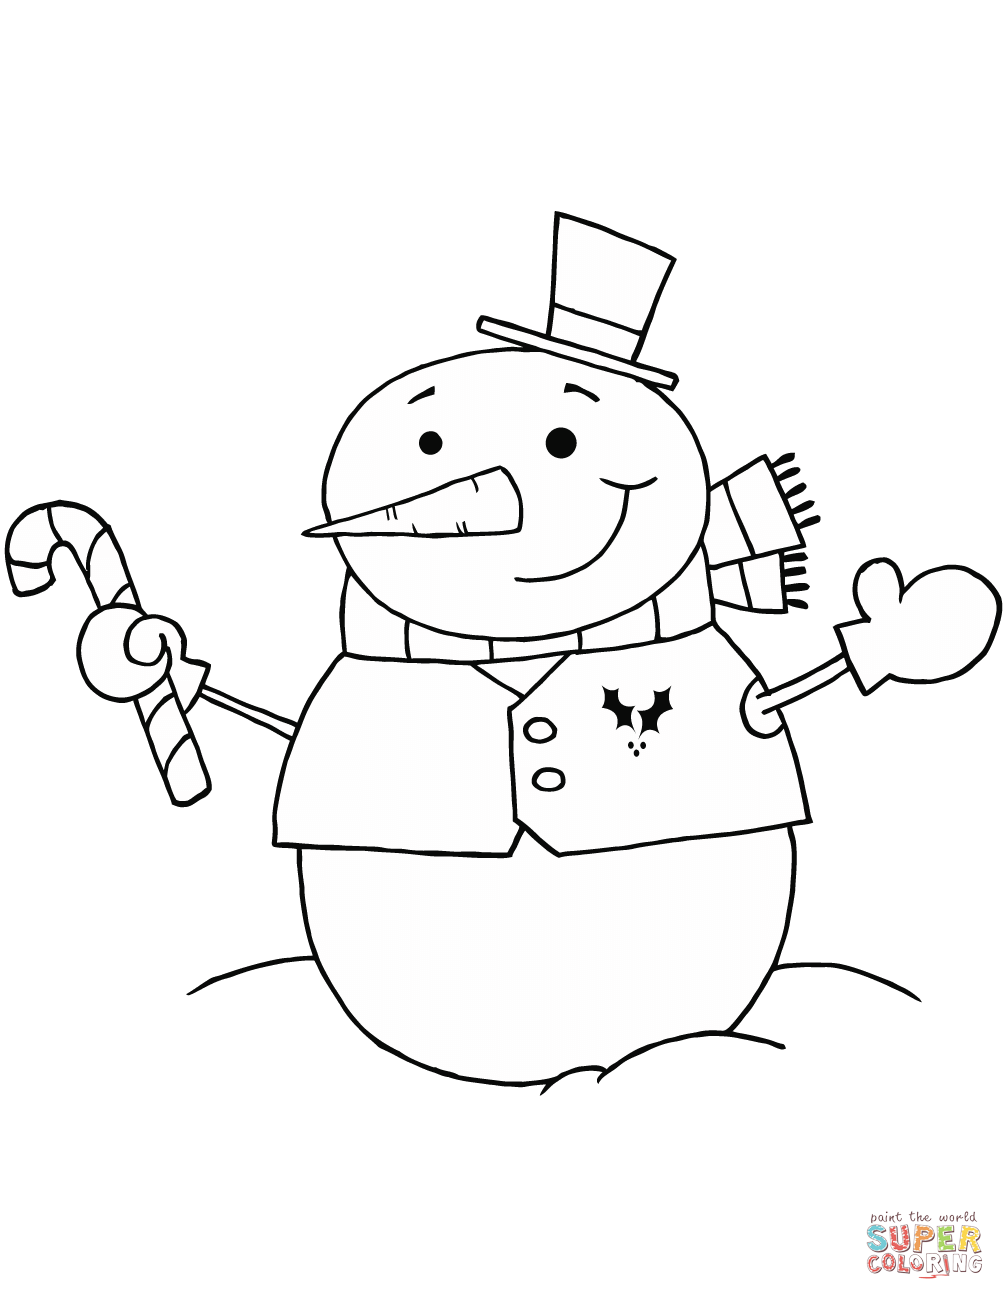 Snowman With Candy Cane Coloring Page Free Printable Coloring Pages